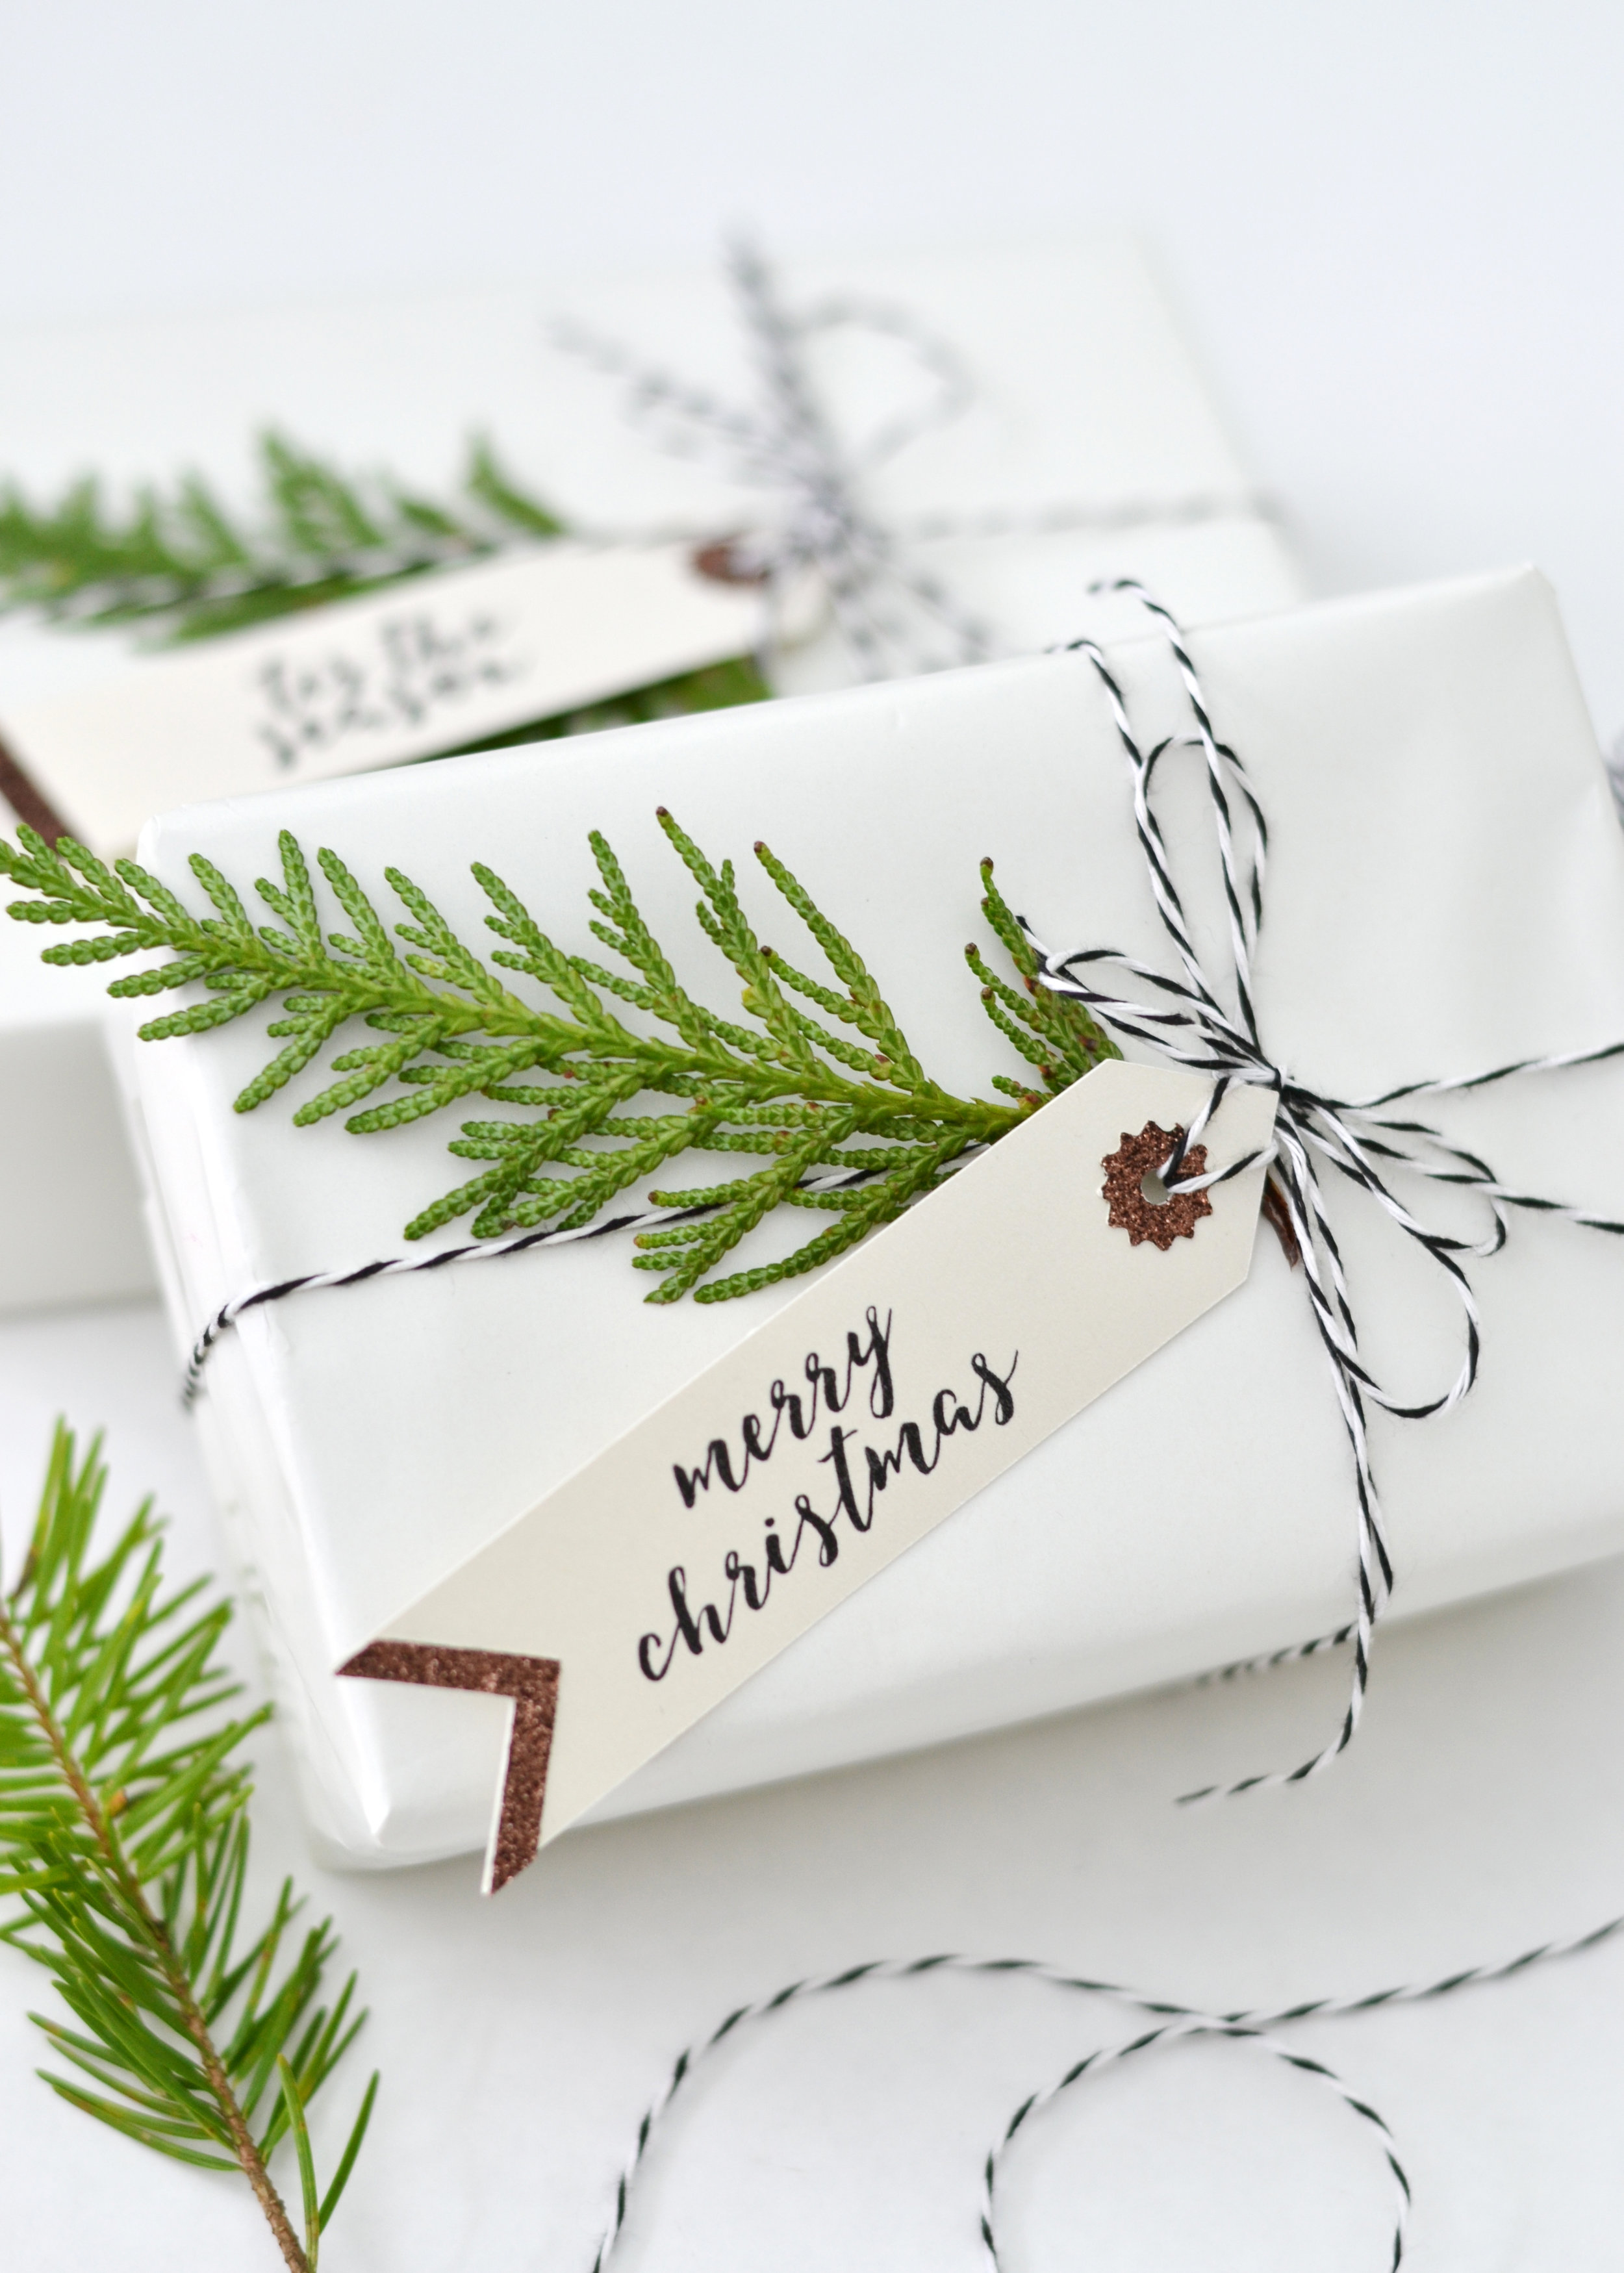 Simple green & white Christmas wrapping ideas from boxwoodavenue.com